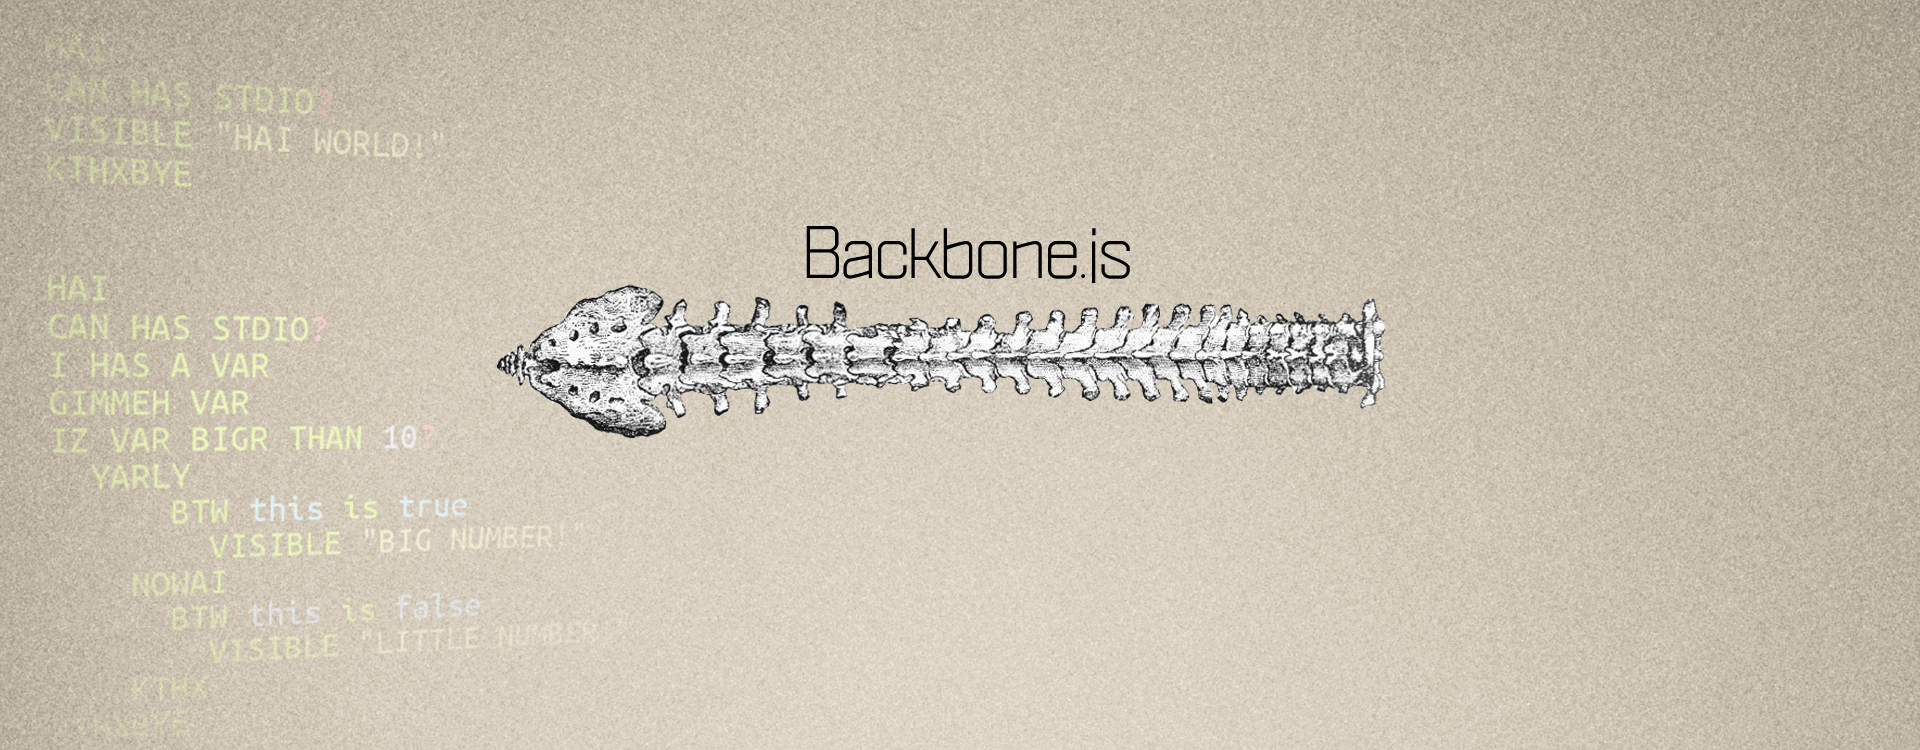 BackboneJS Development